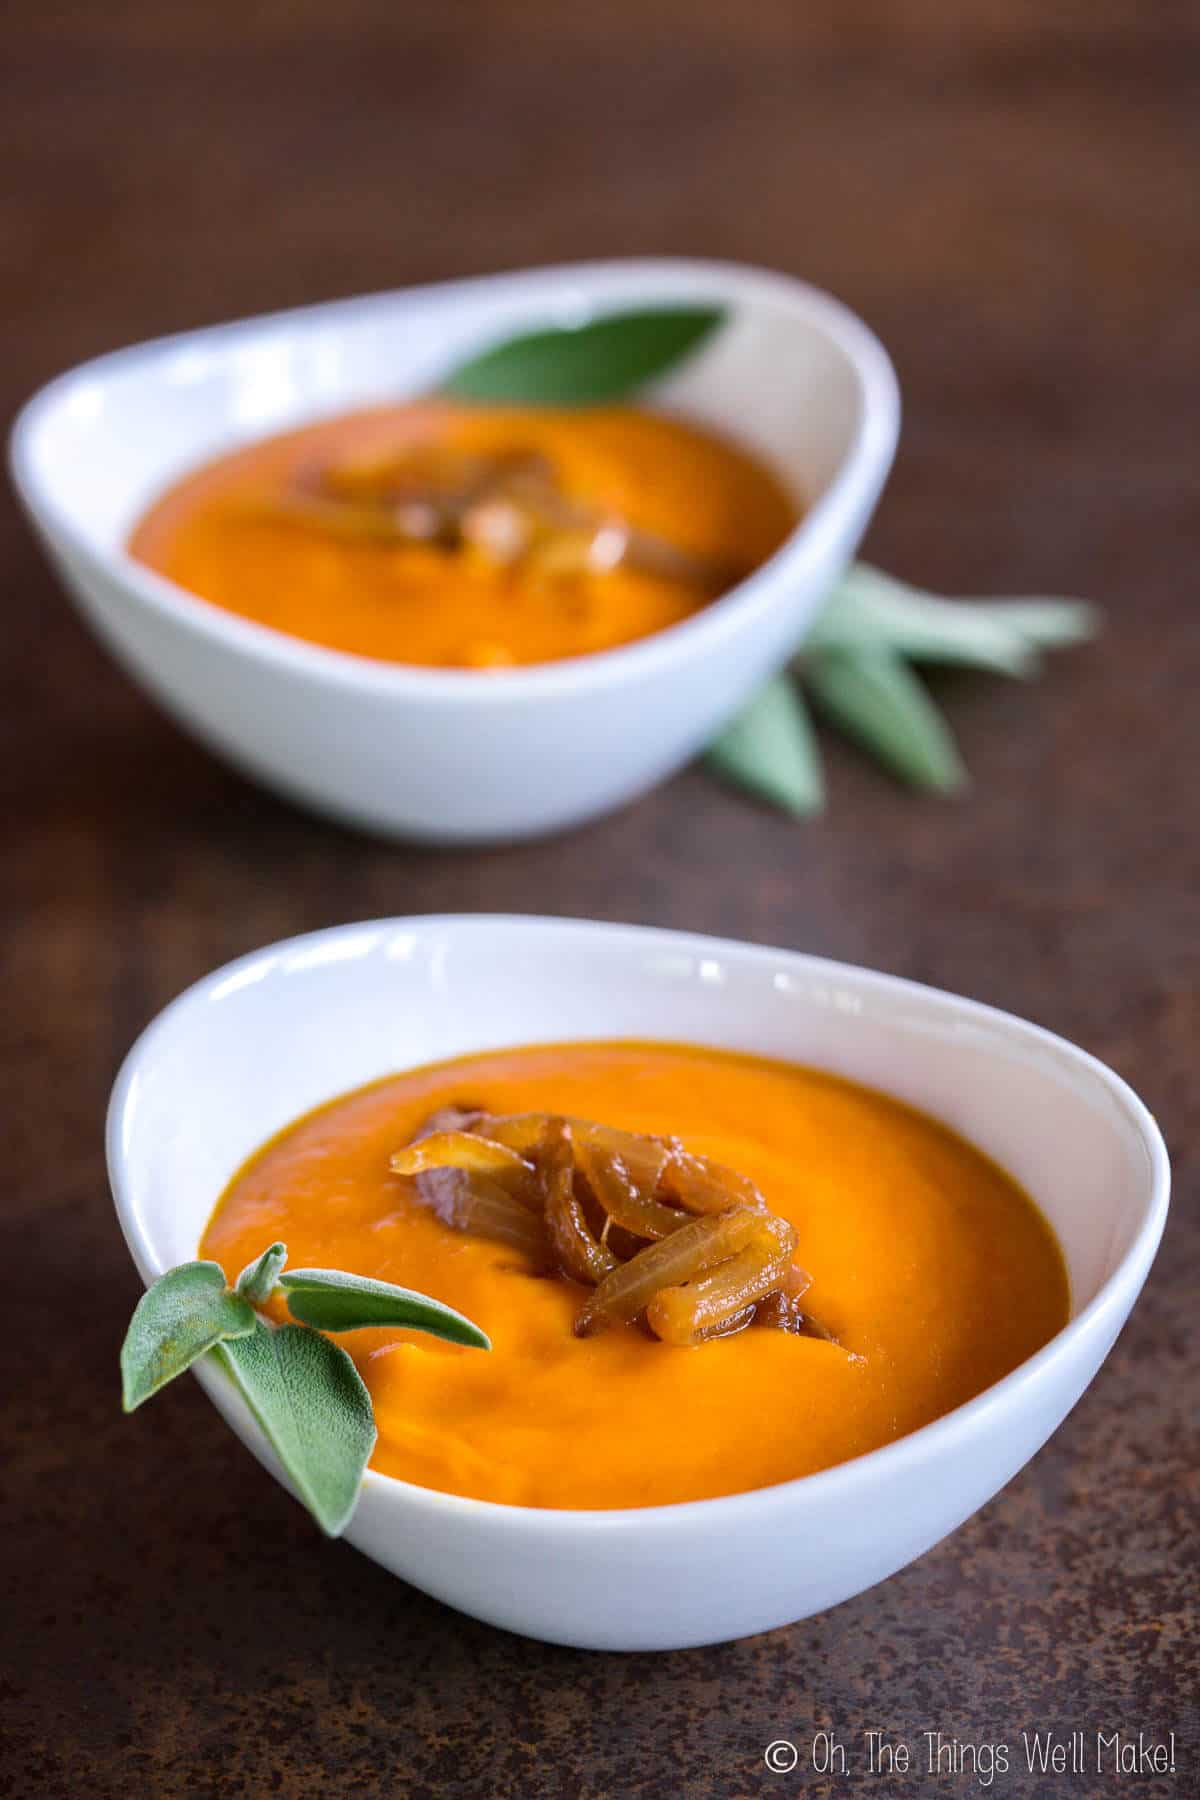 Two bowls of creamy, roasted pumpkin soup garnished with caramelized onions and fresh sage leaves